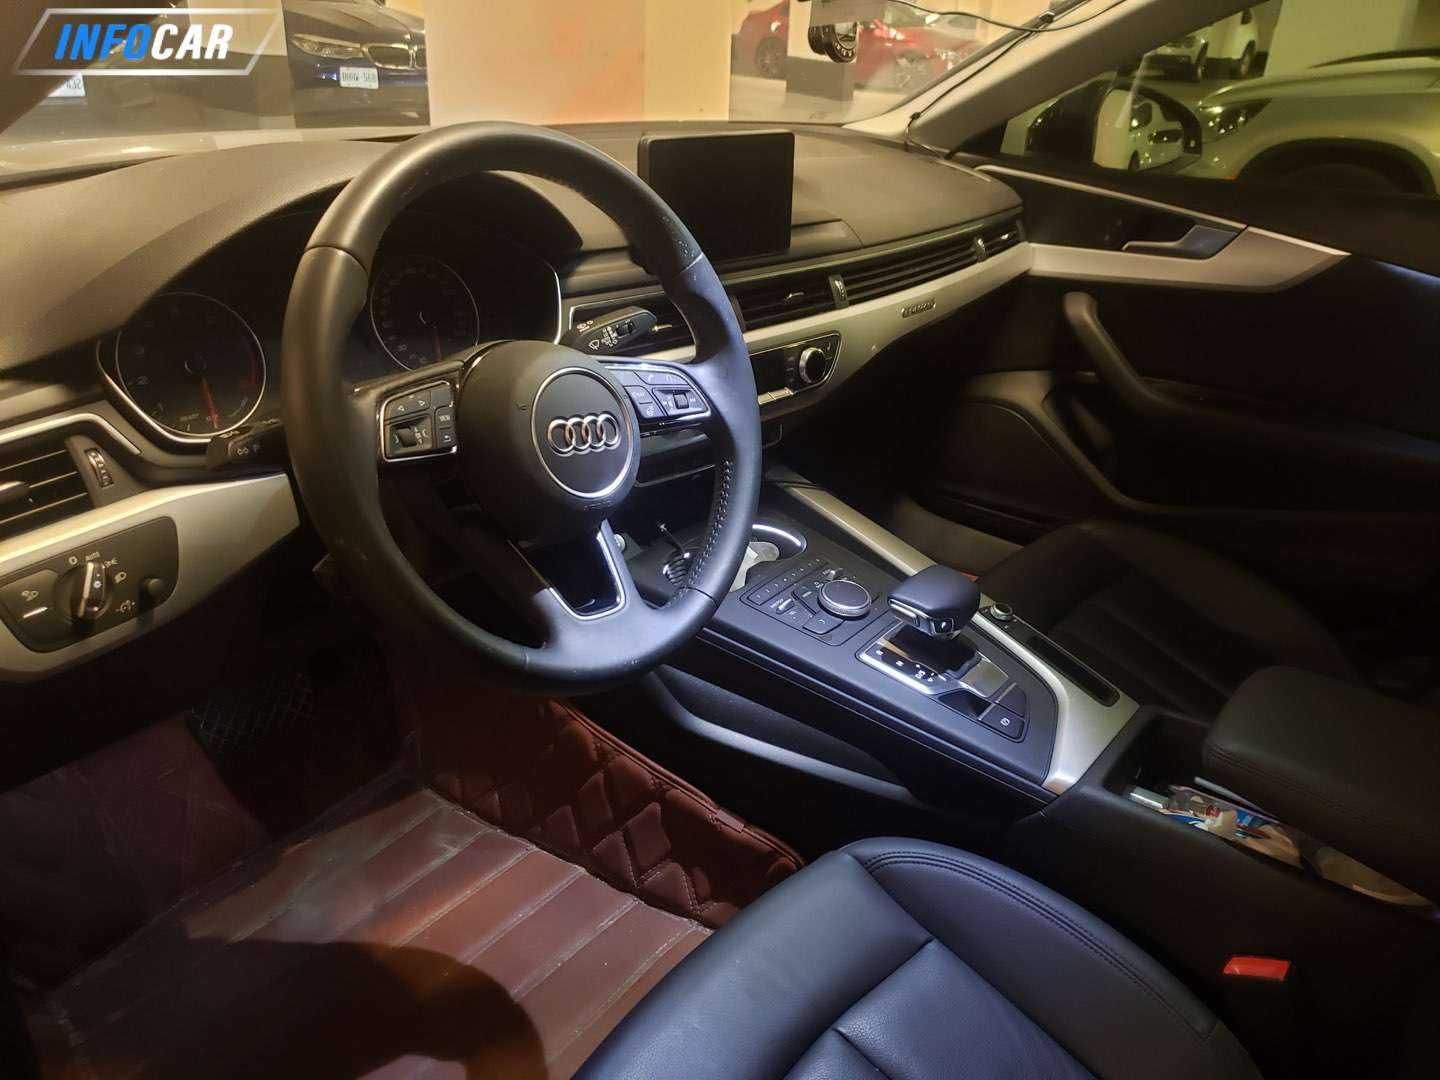 2018 Audi A5  - INFOCAR - Toronto's Most Comprehensive New and Used Auto Trading Platform